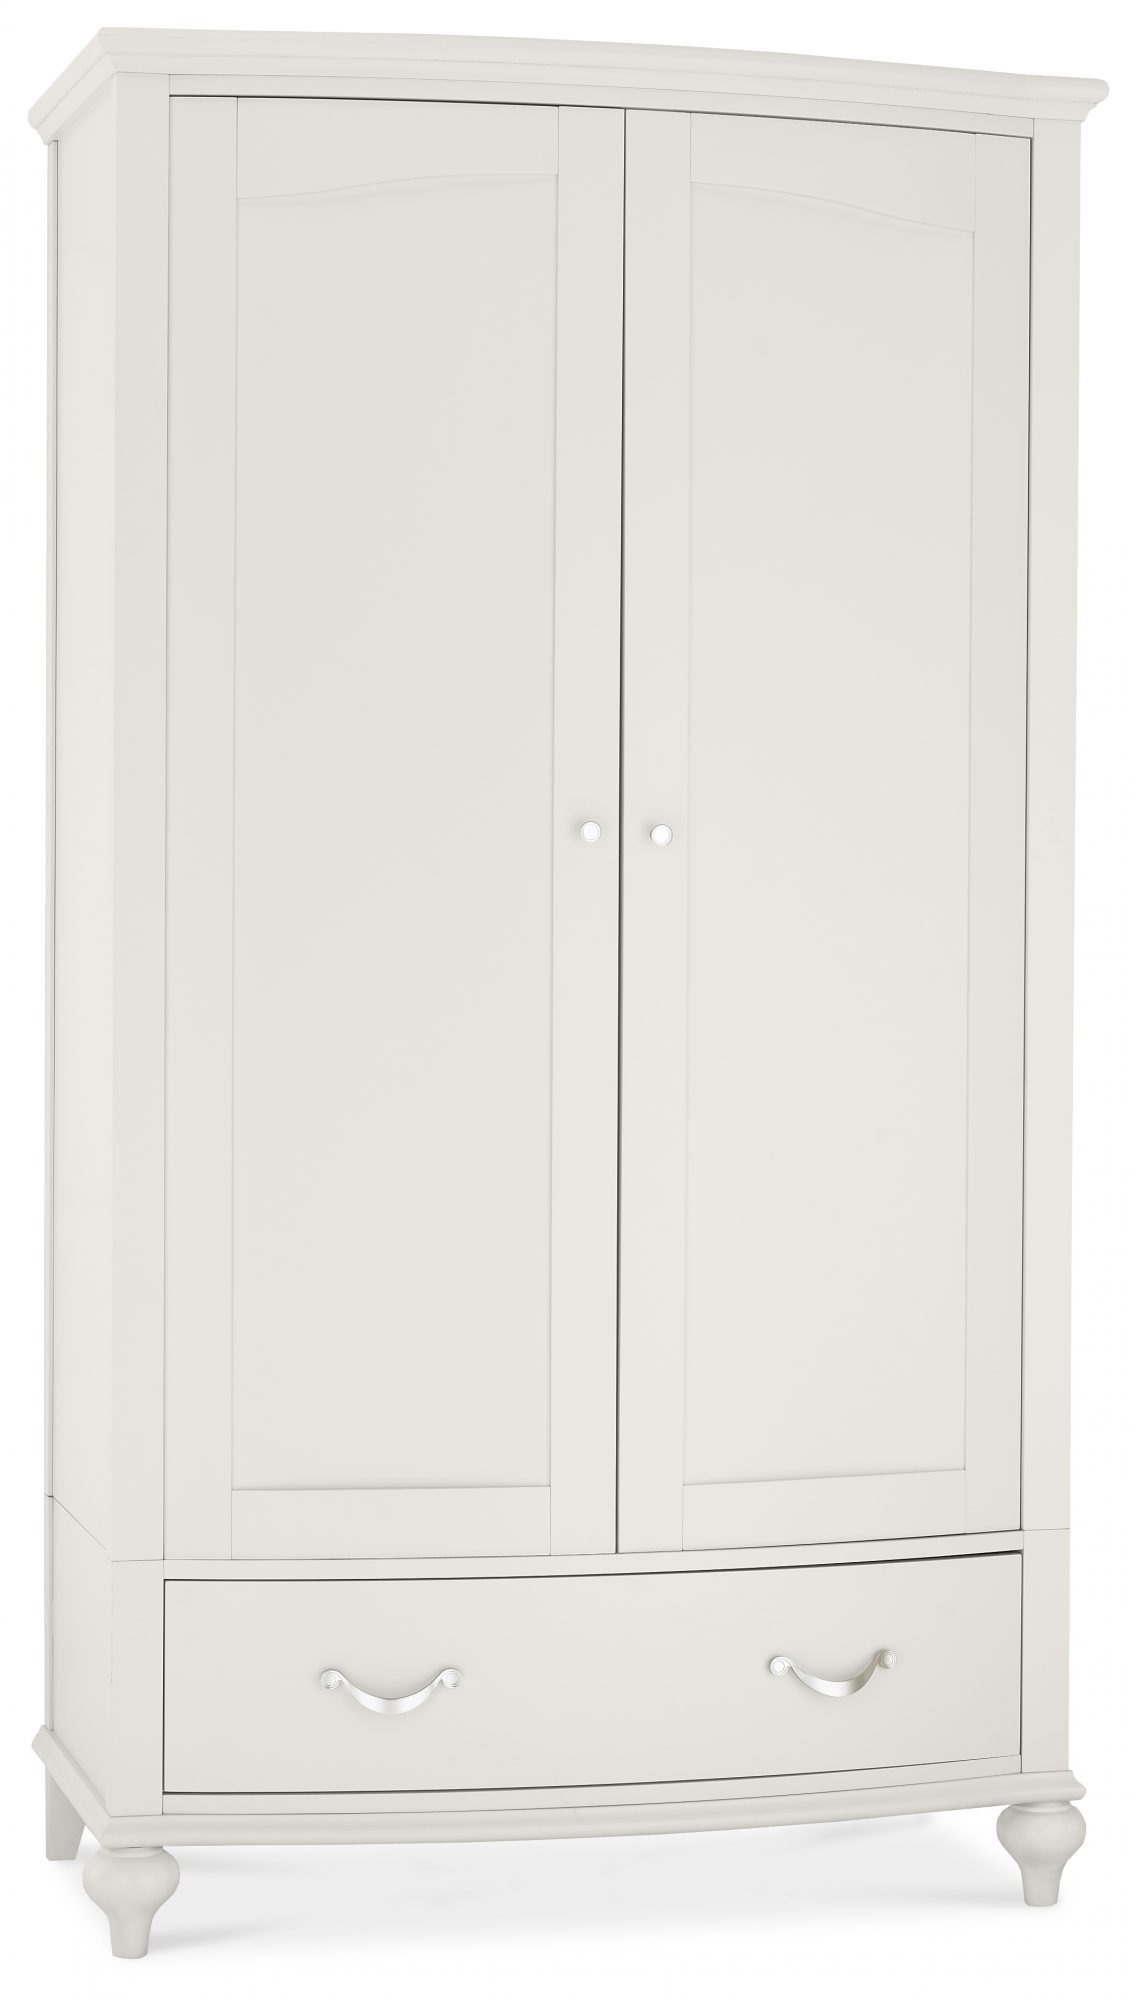 MONICA GREY DOUBLE WARDROBE - ANGLE DETAIL